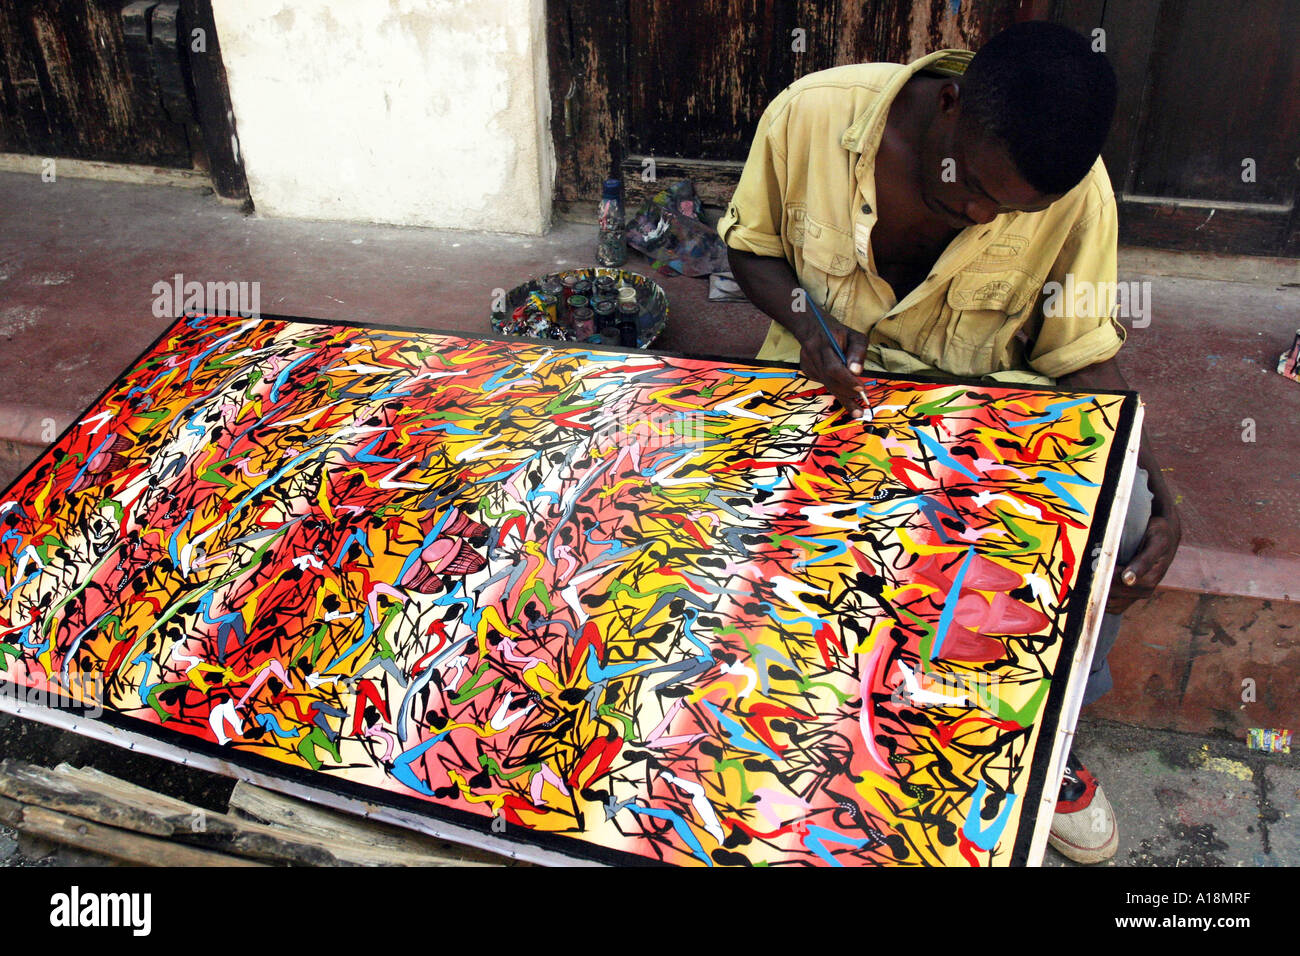 ZANZIBAR - Tinga Tinga peinture Photo Stock